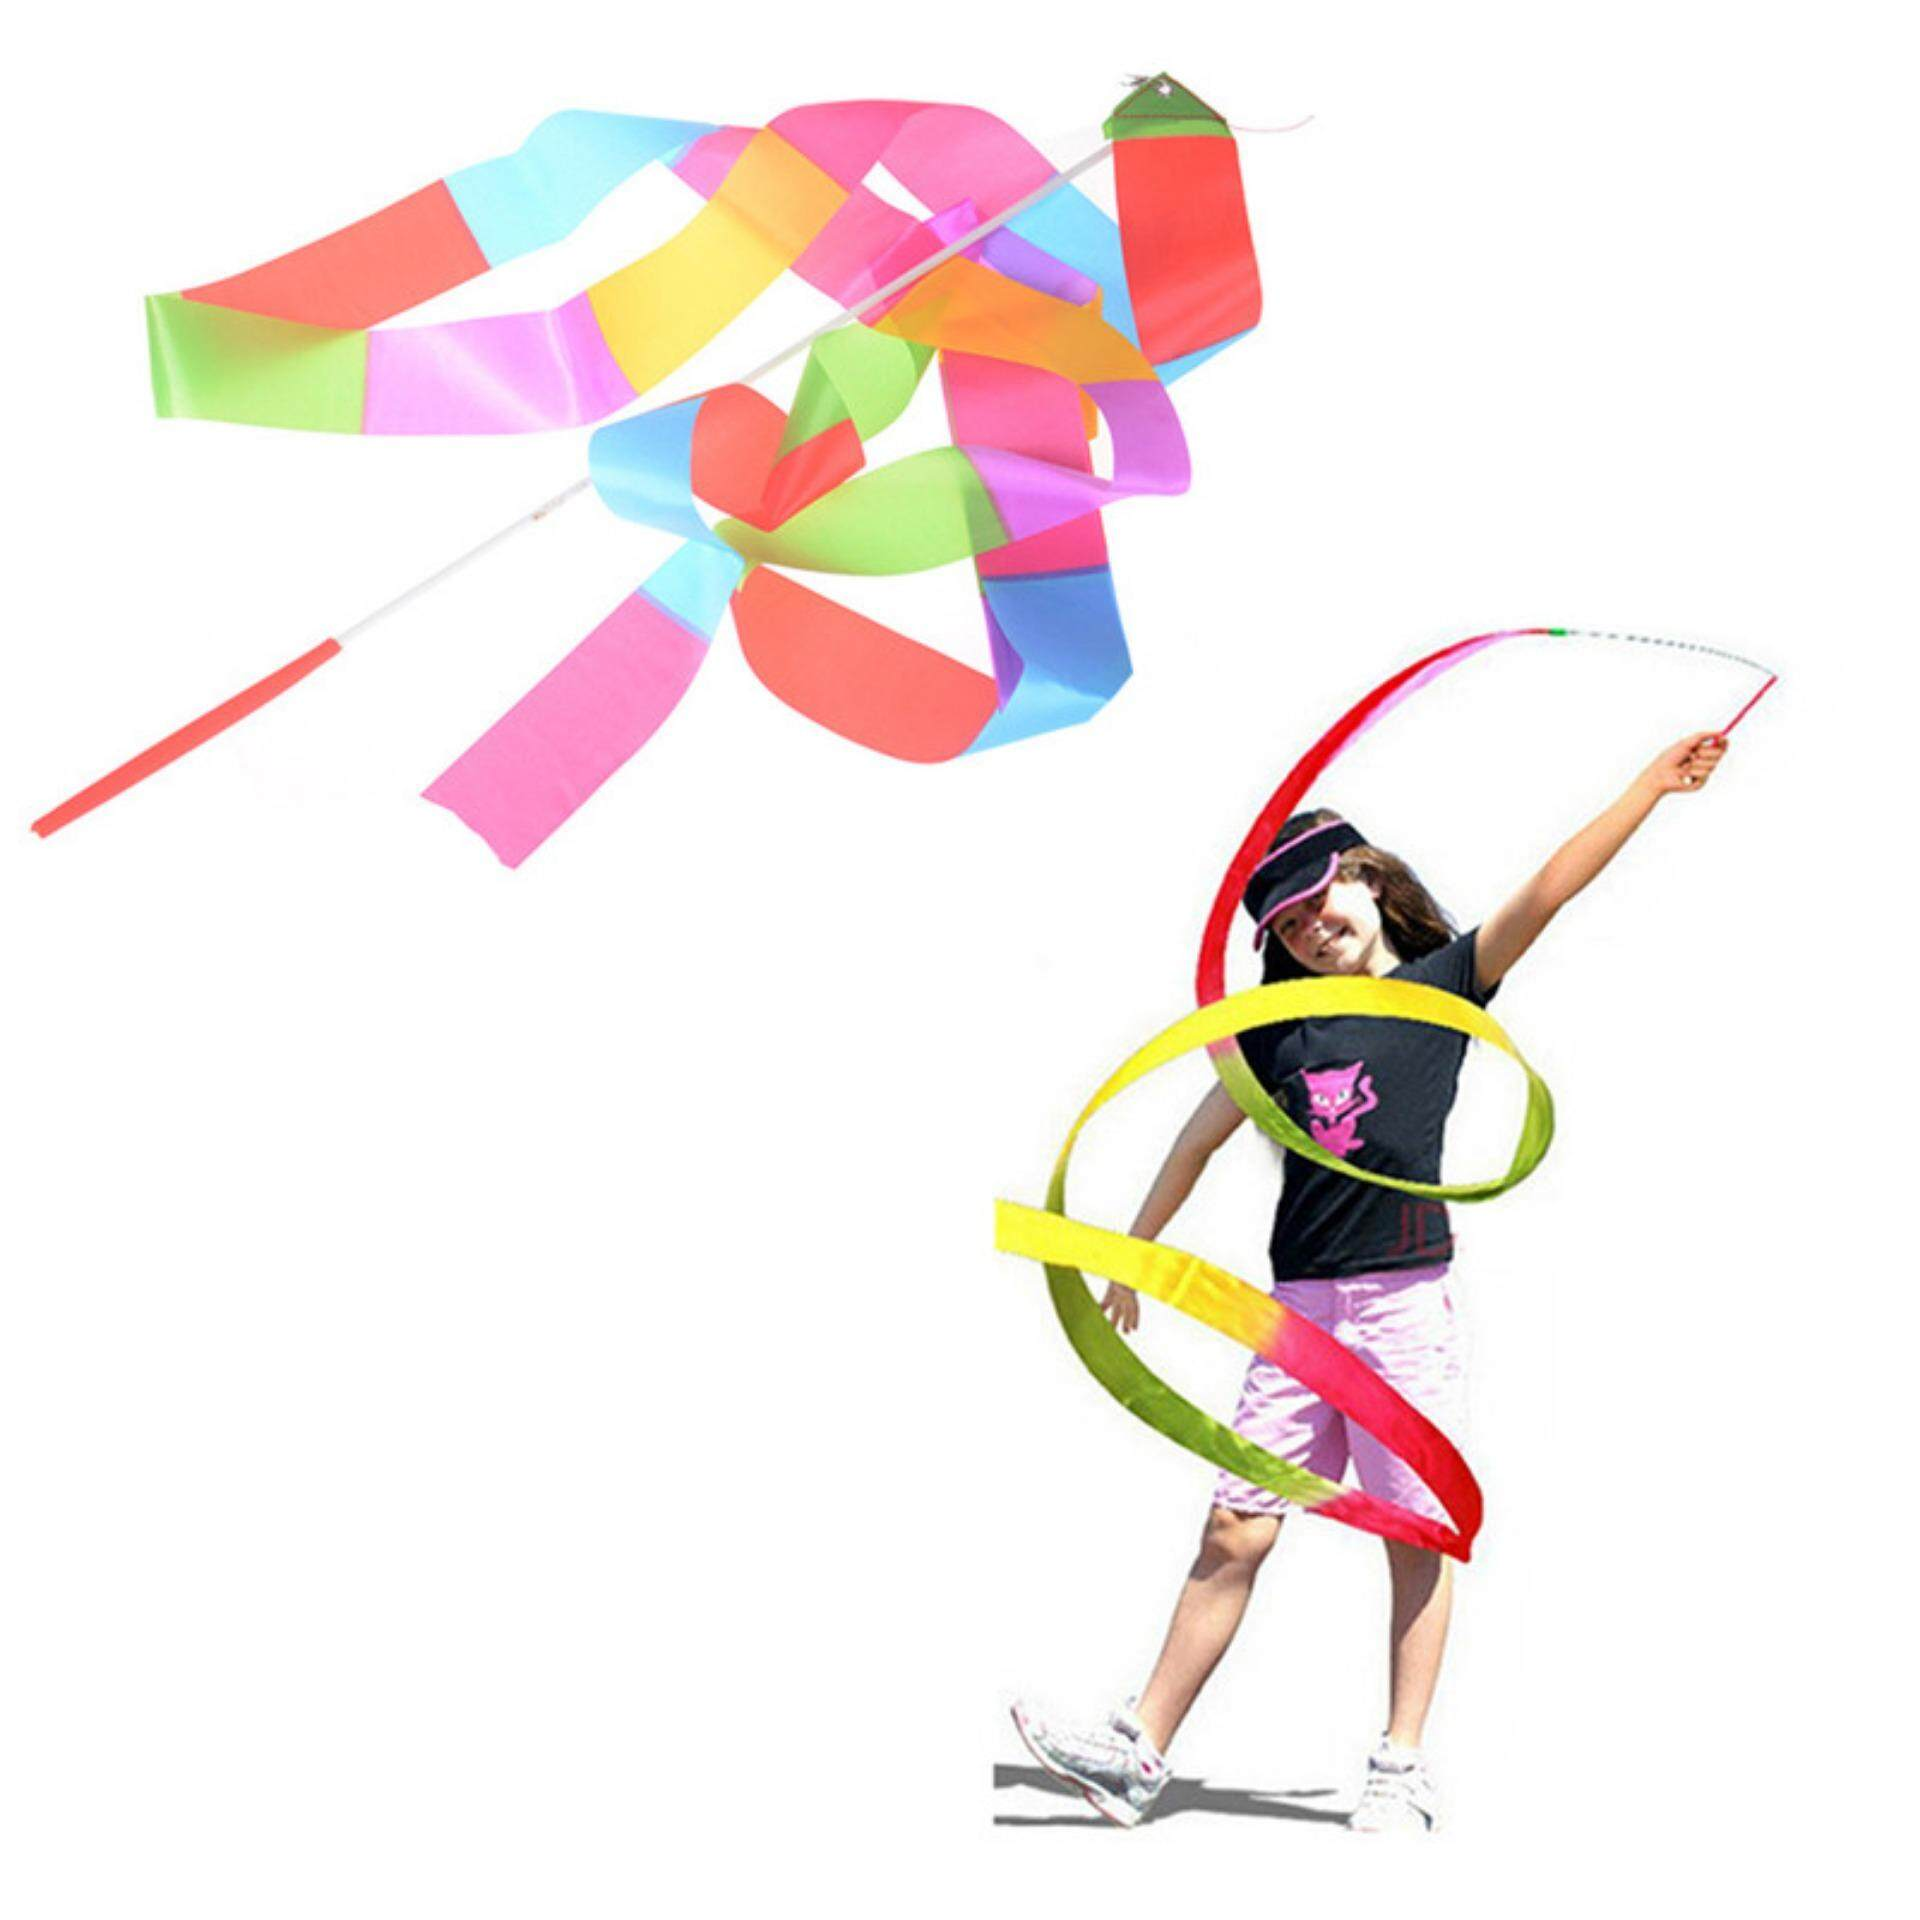 Popular Colorful 4m Ribbon Gymnastics Dance Dancer Toy Kid Outdoor Sport Toy By Blowing Snow.